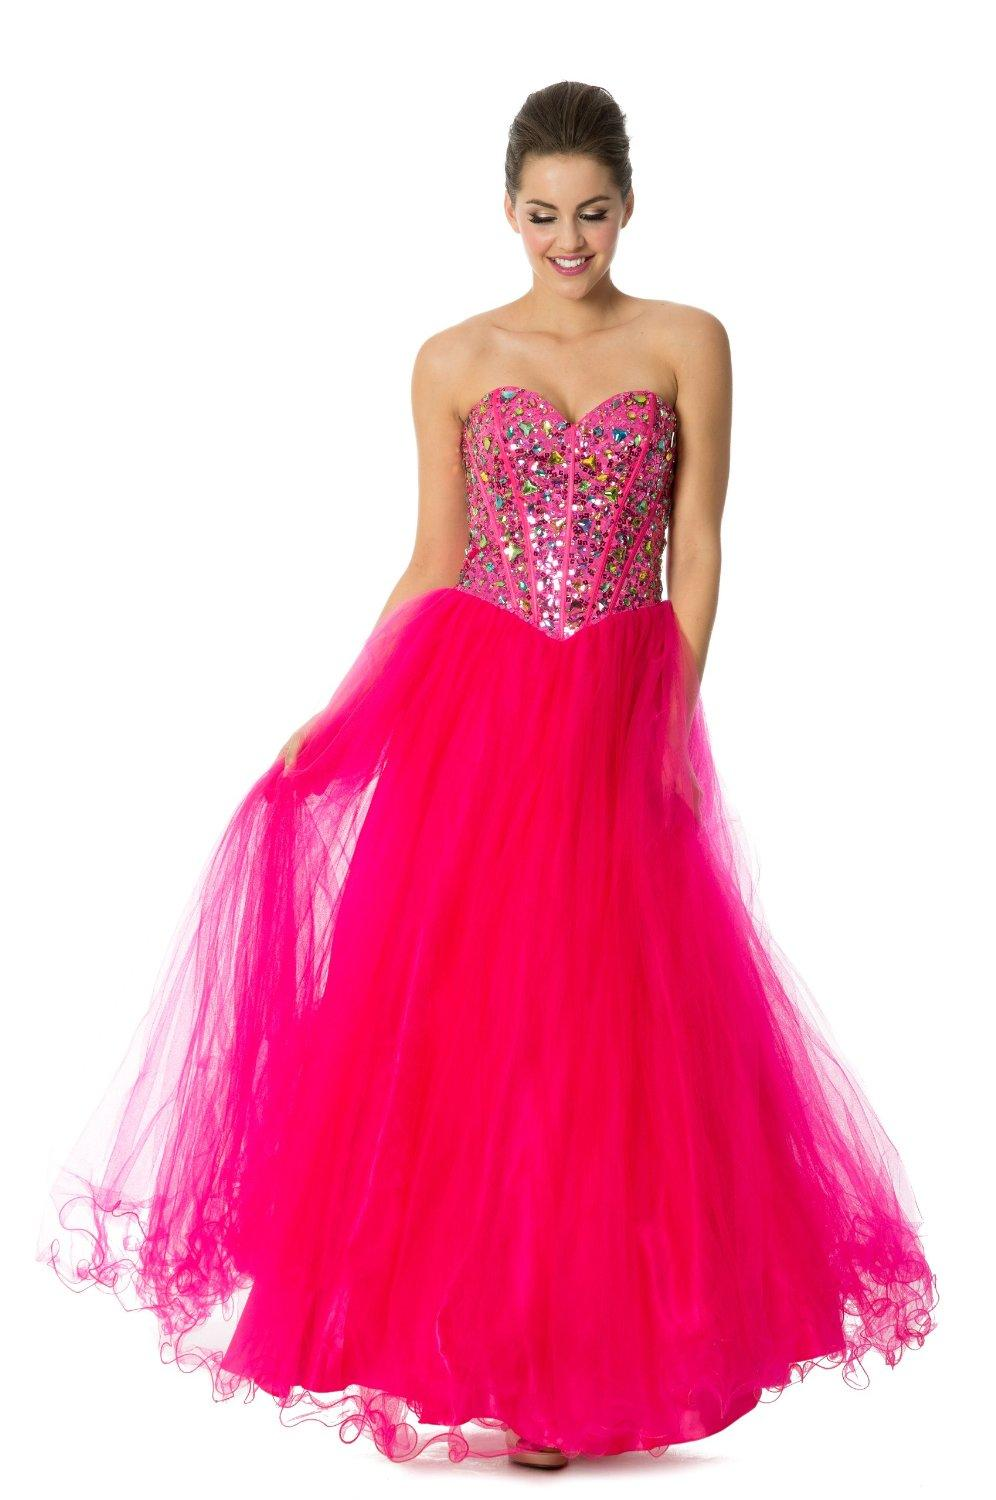 Donate prom dresses kansas city flower girl dresses for Where to donate wedding dress near me